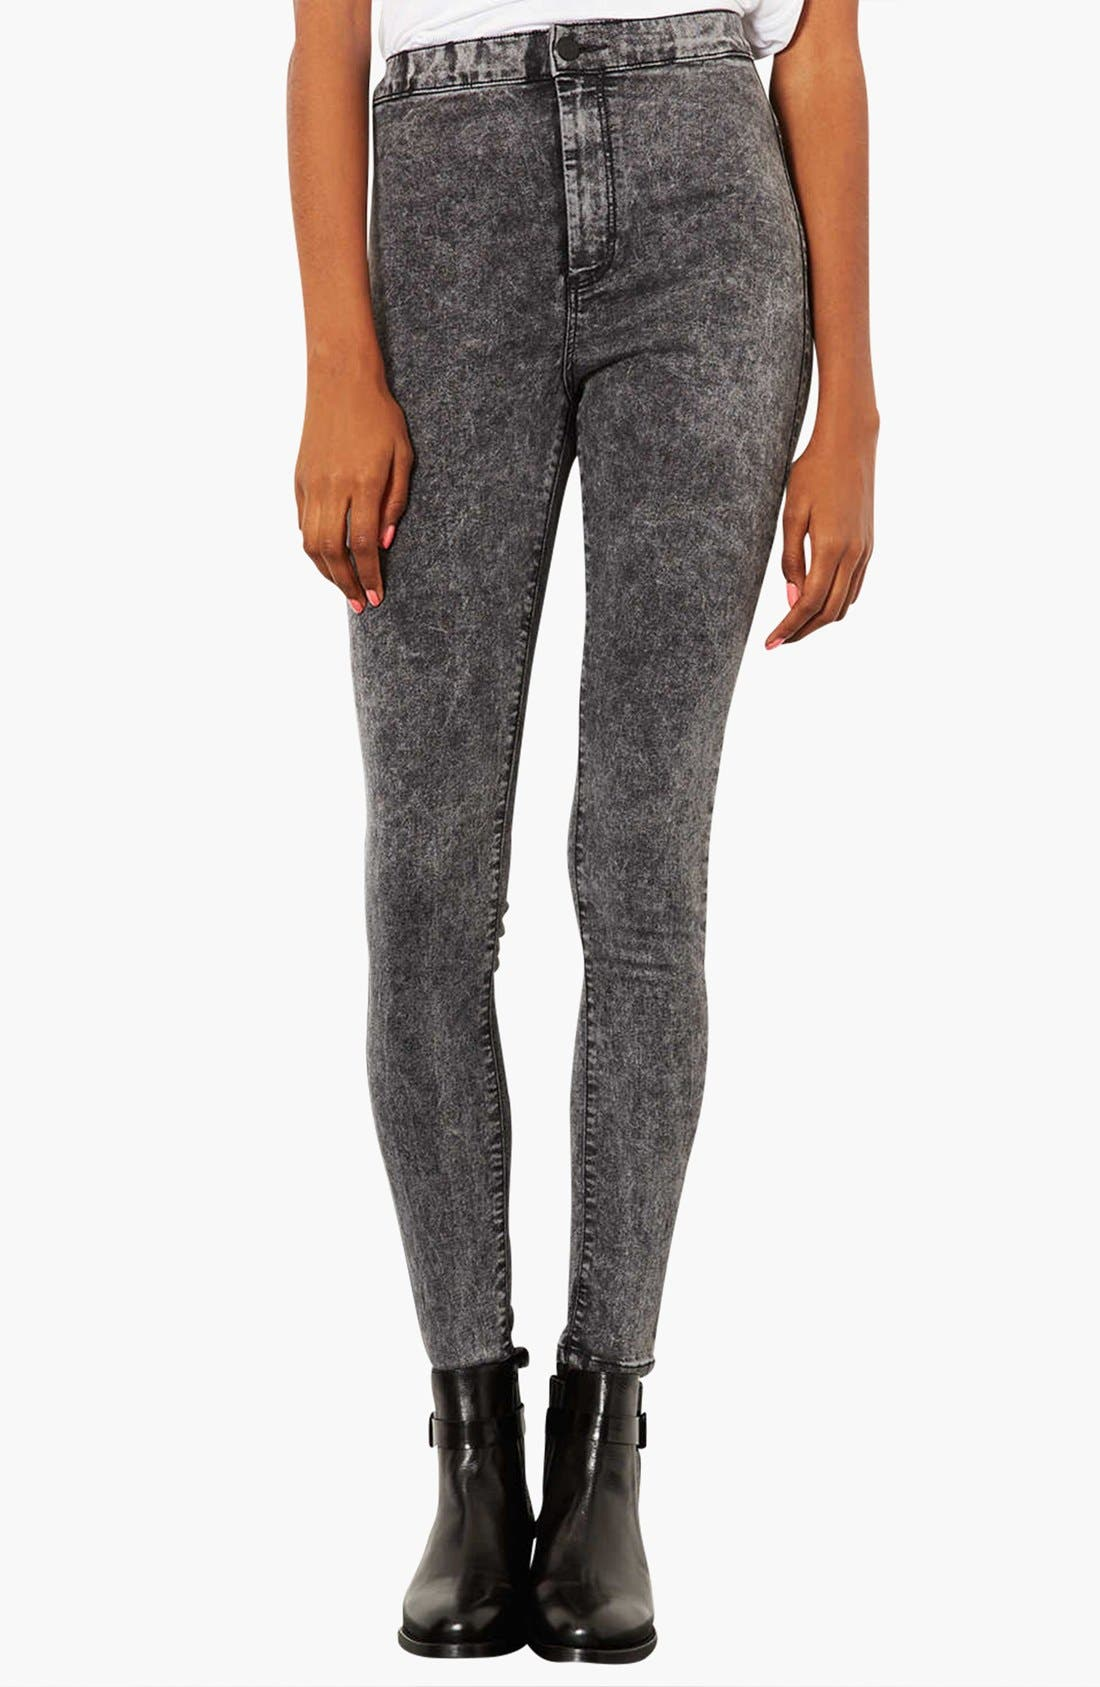 Alternate Image 1 Selected - Topshop Moto 'Joni' Acid Wash High Rise Skinny Jeans (Black) (Regular, Short & Long)